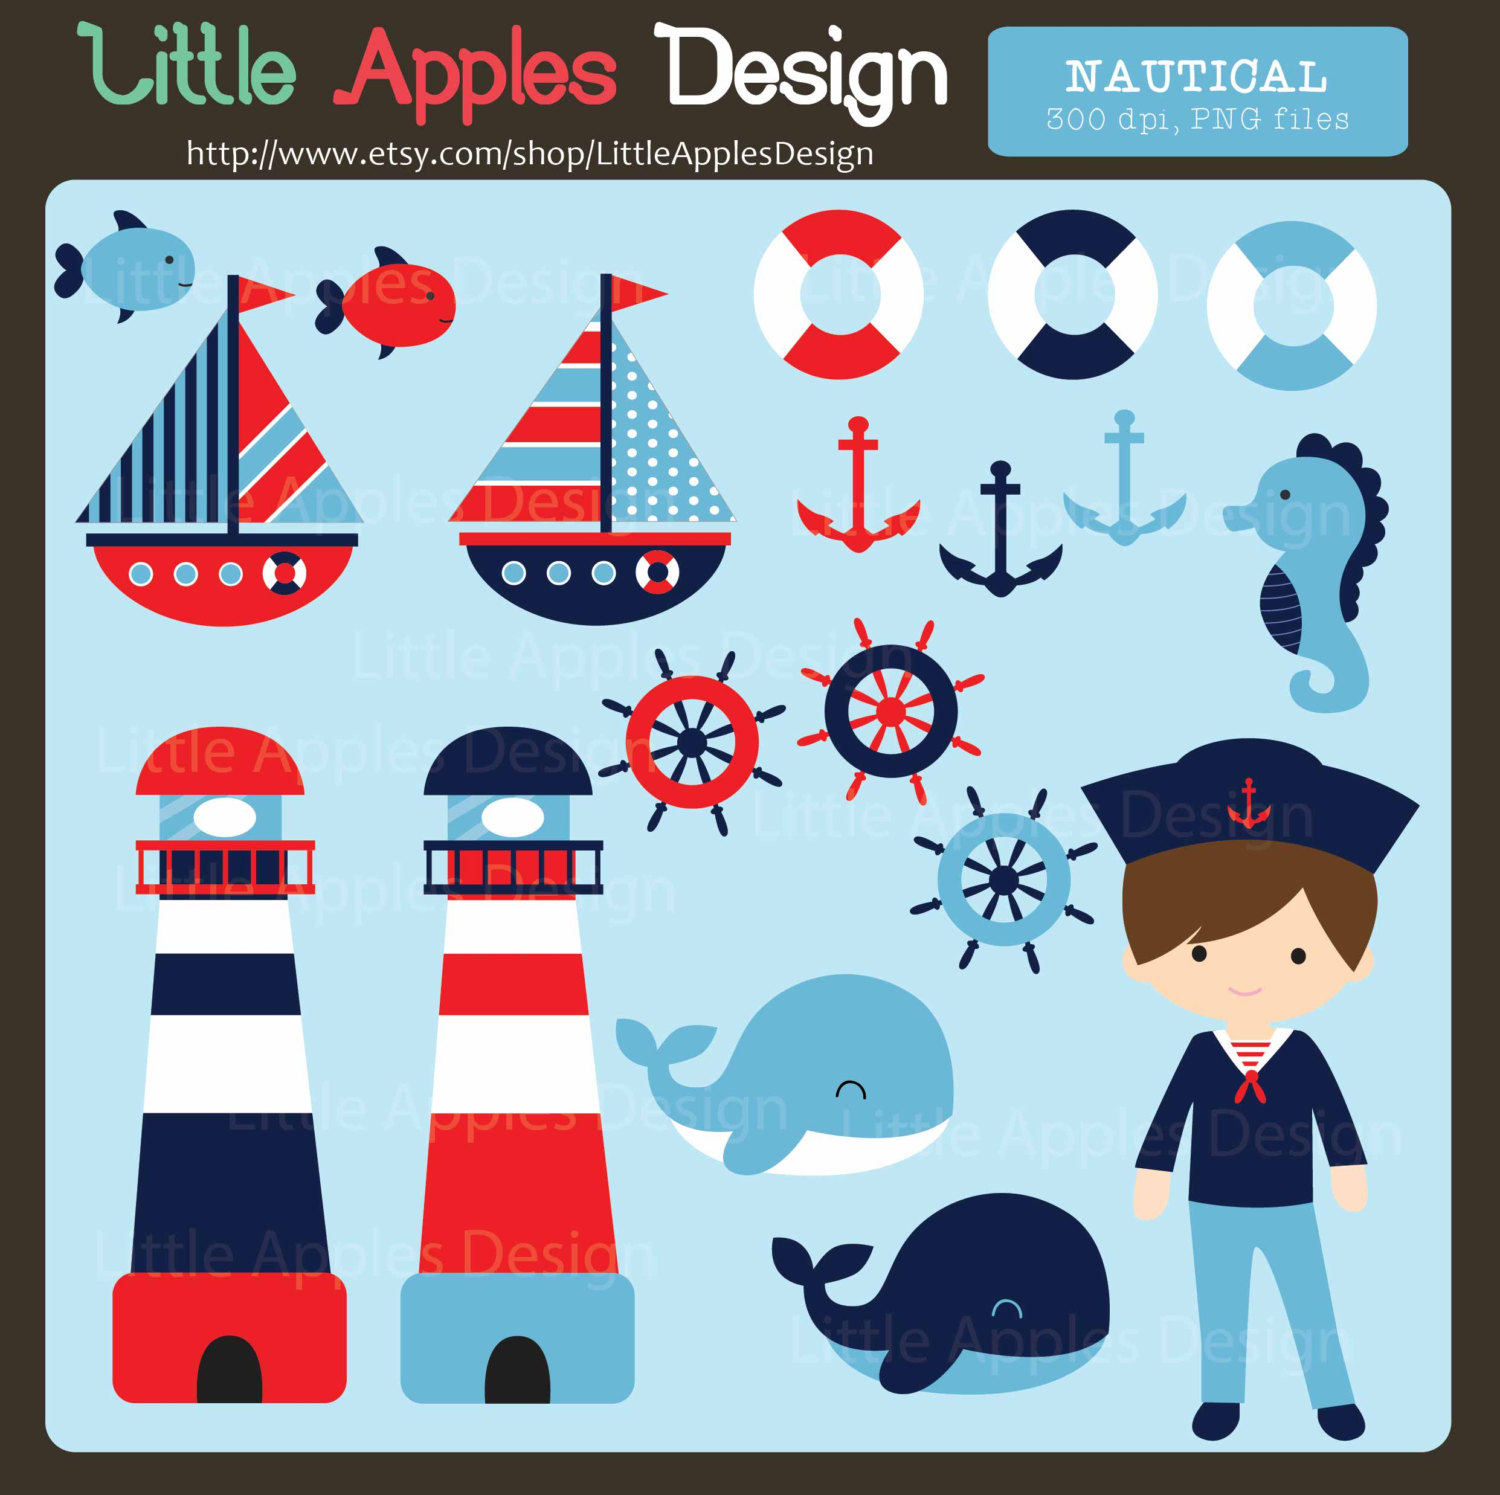 Lighthouse clipart sailor Sailor Commercial Clipart Nautical Personal